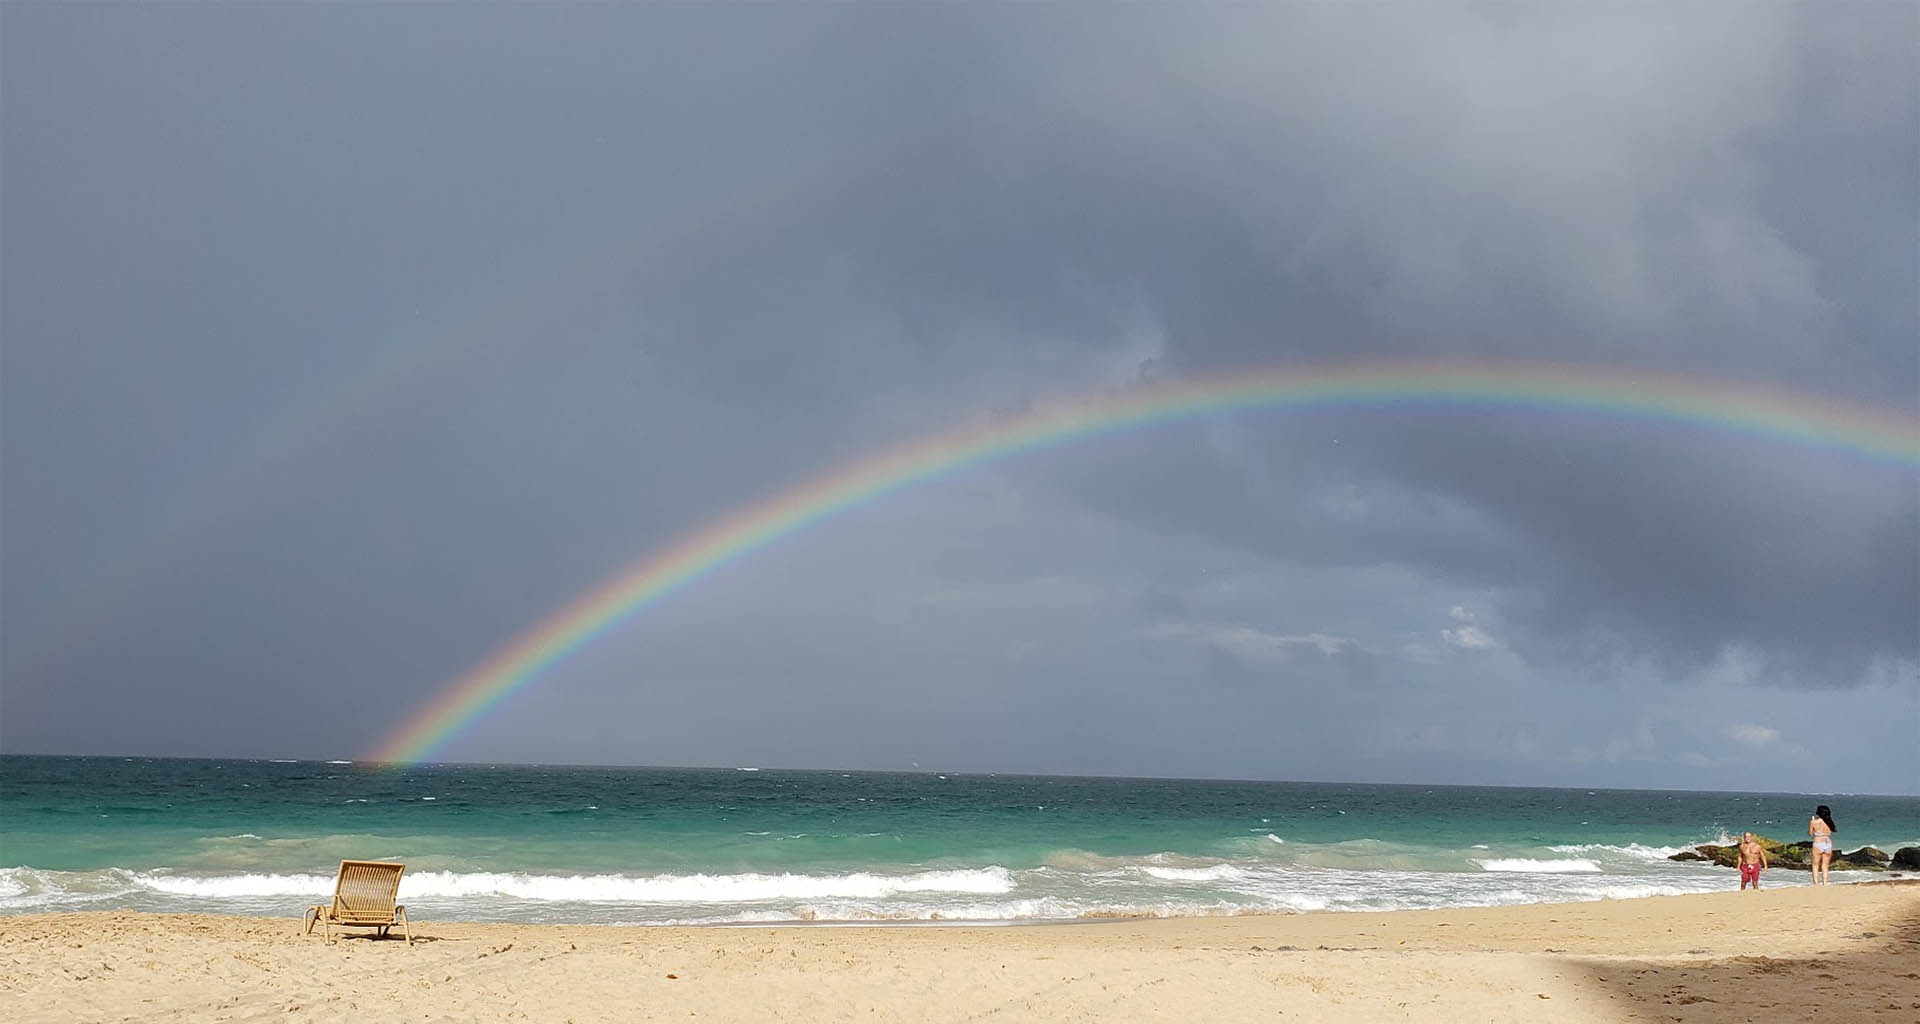 double-rainbow-atlantic-beach-condado-san-juan-puerto-rico-mark-derho-photgrapher